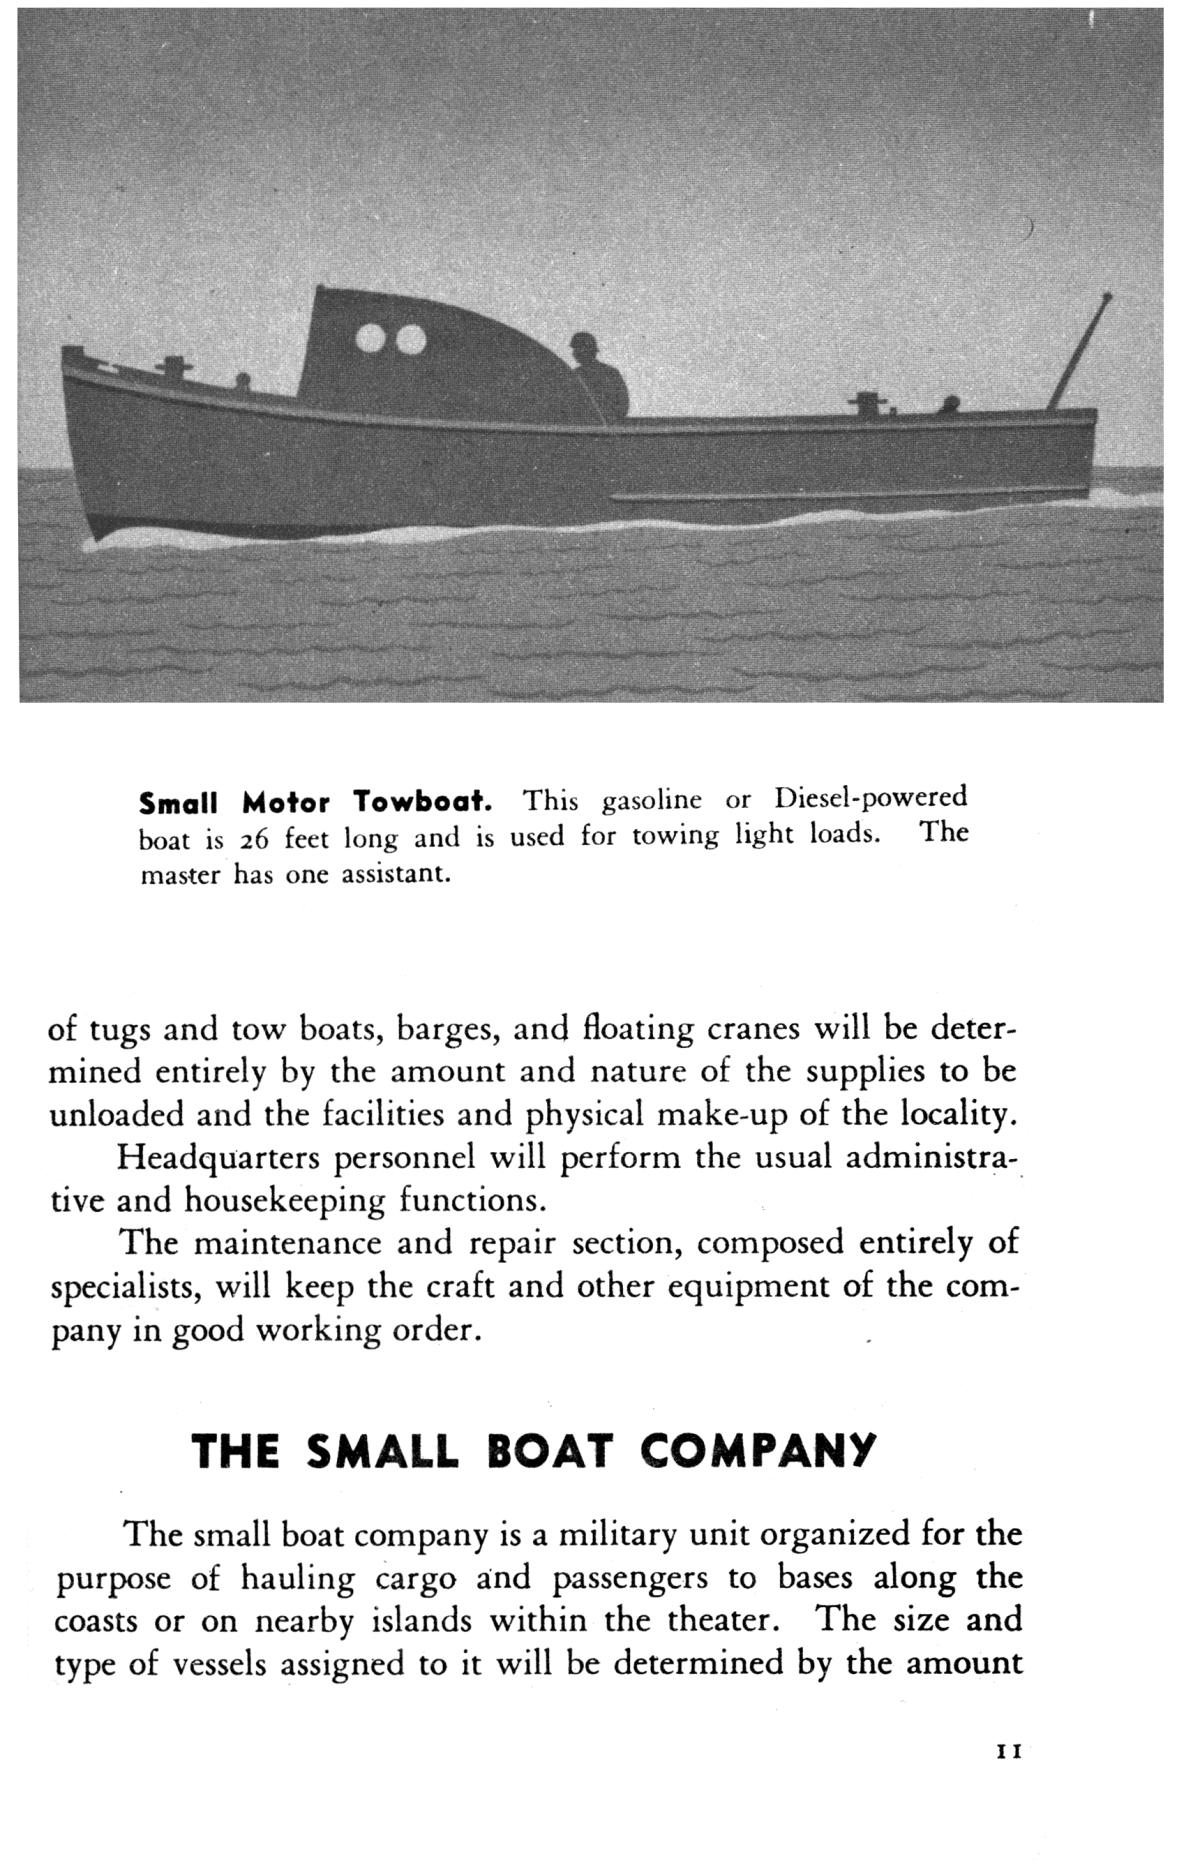 Small boats and harbor craft  - Page 11 - Digital Library